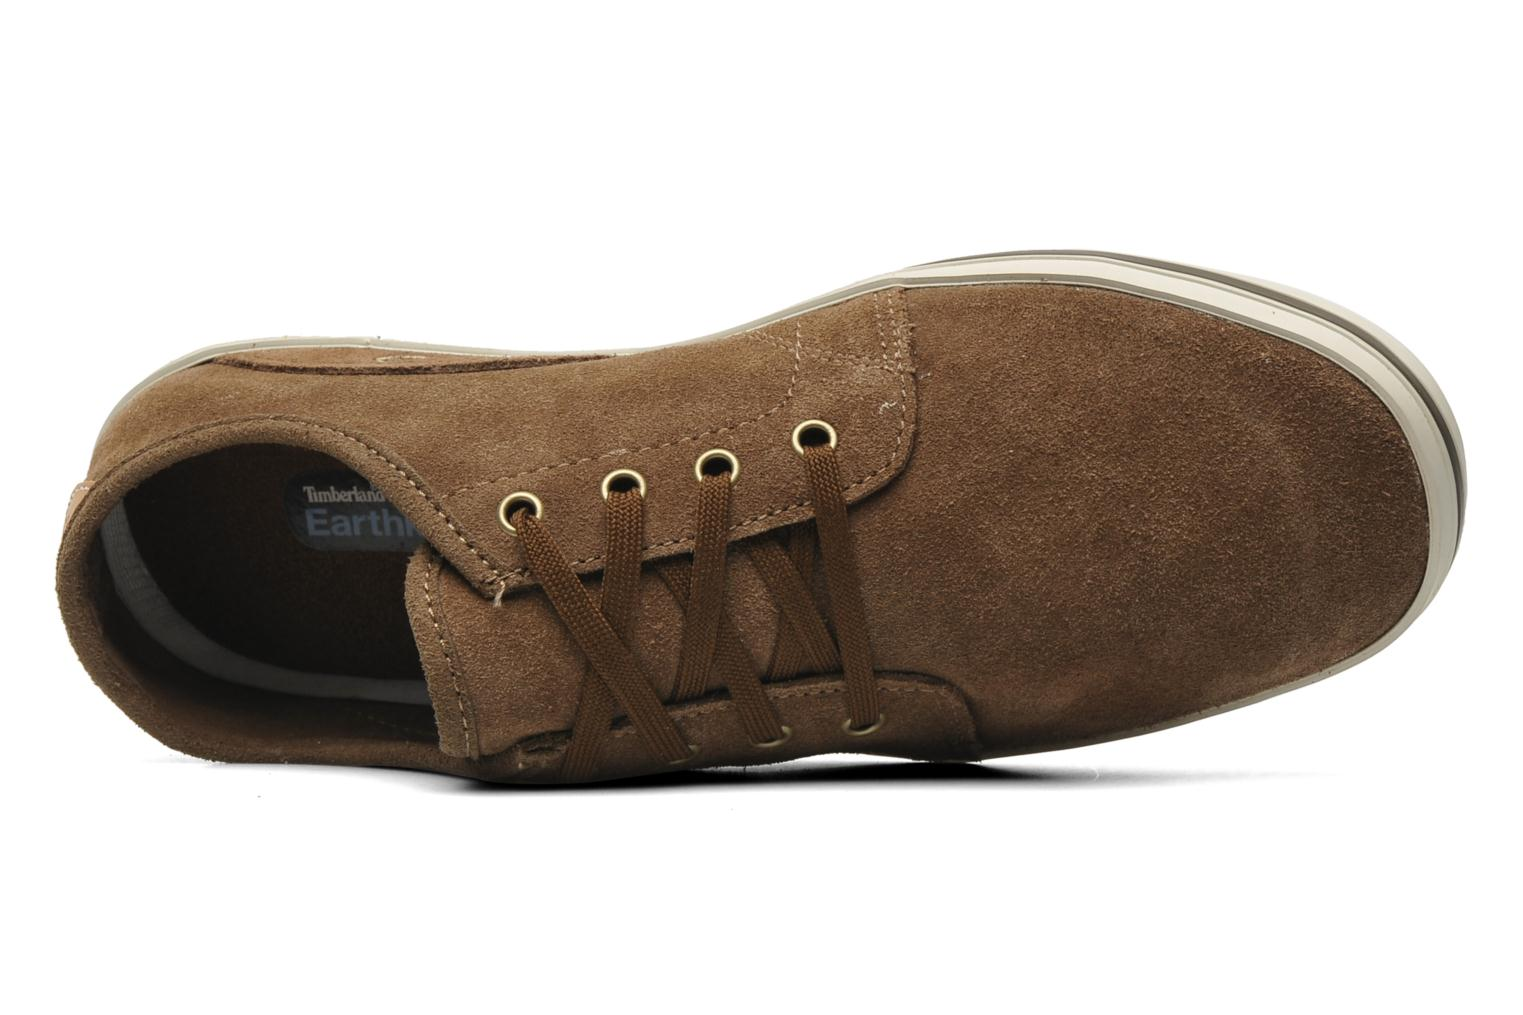 Earthkeepers Casco Bay Leather Ox M Brown Suede